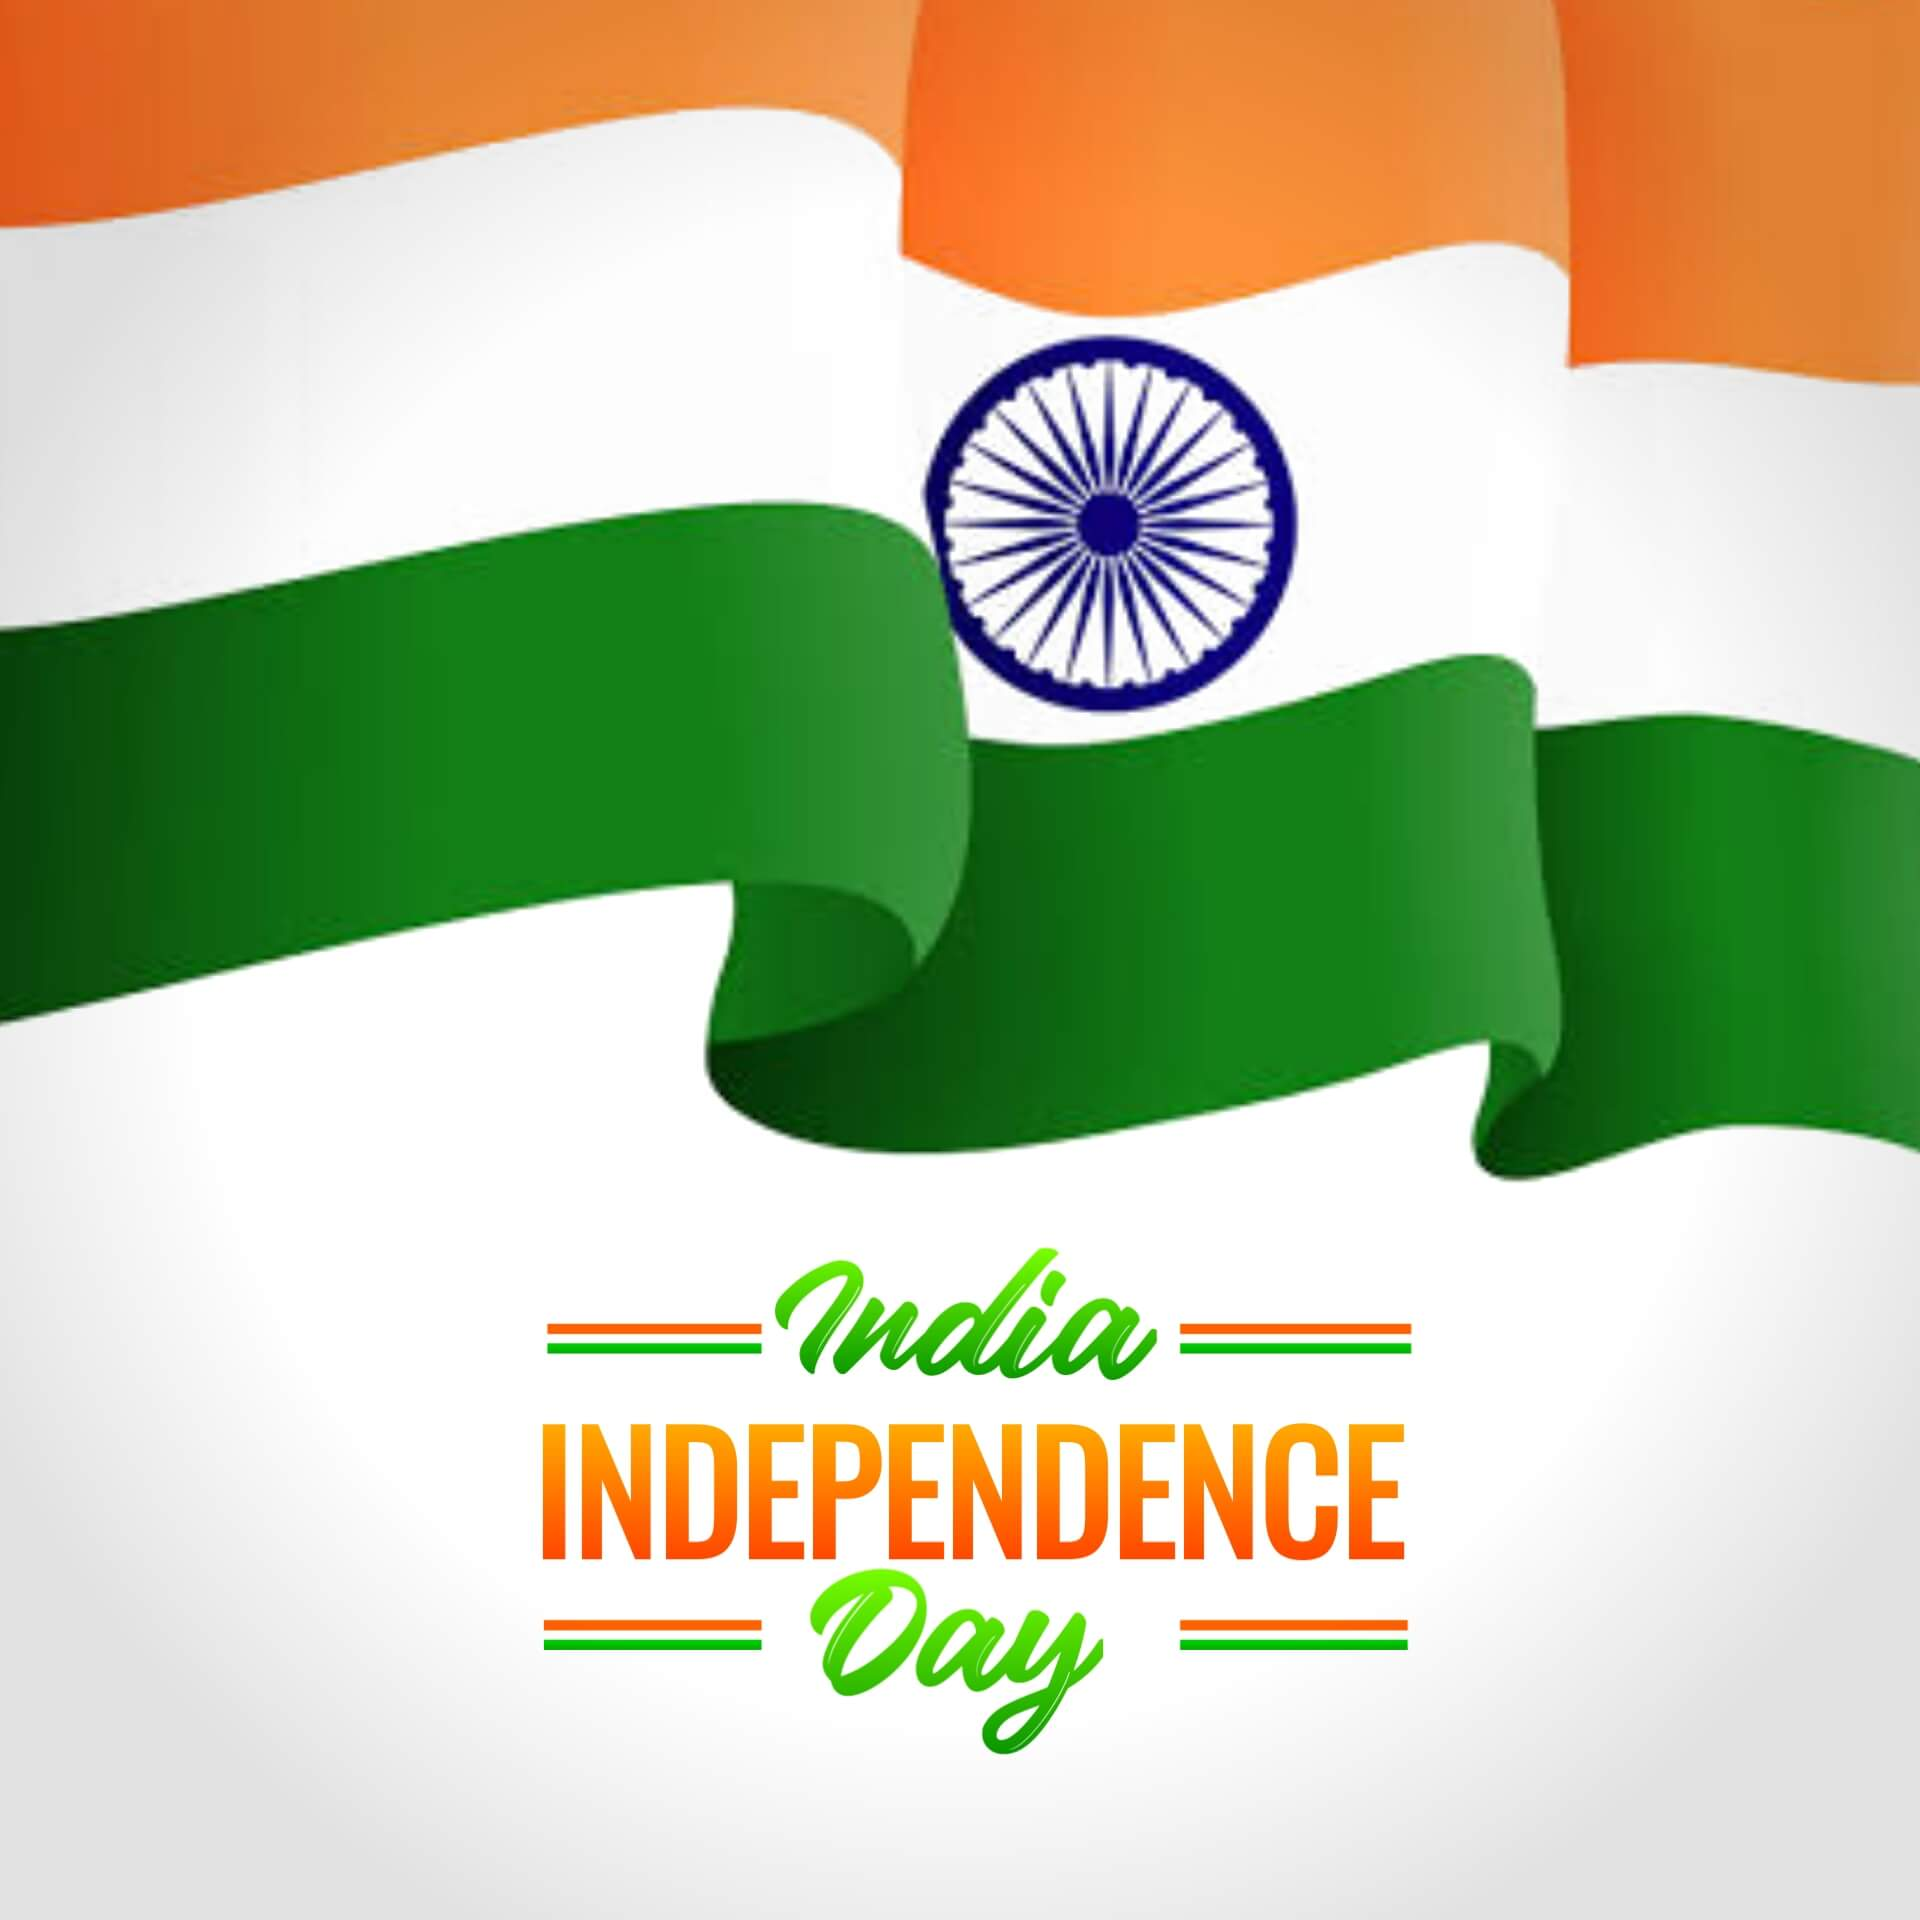 India Independence Day Status Image